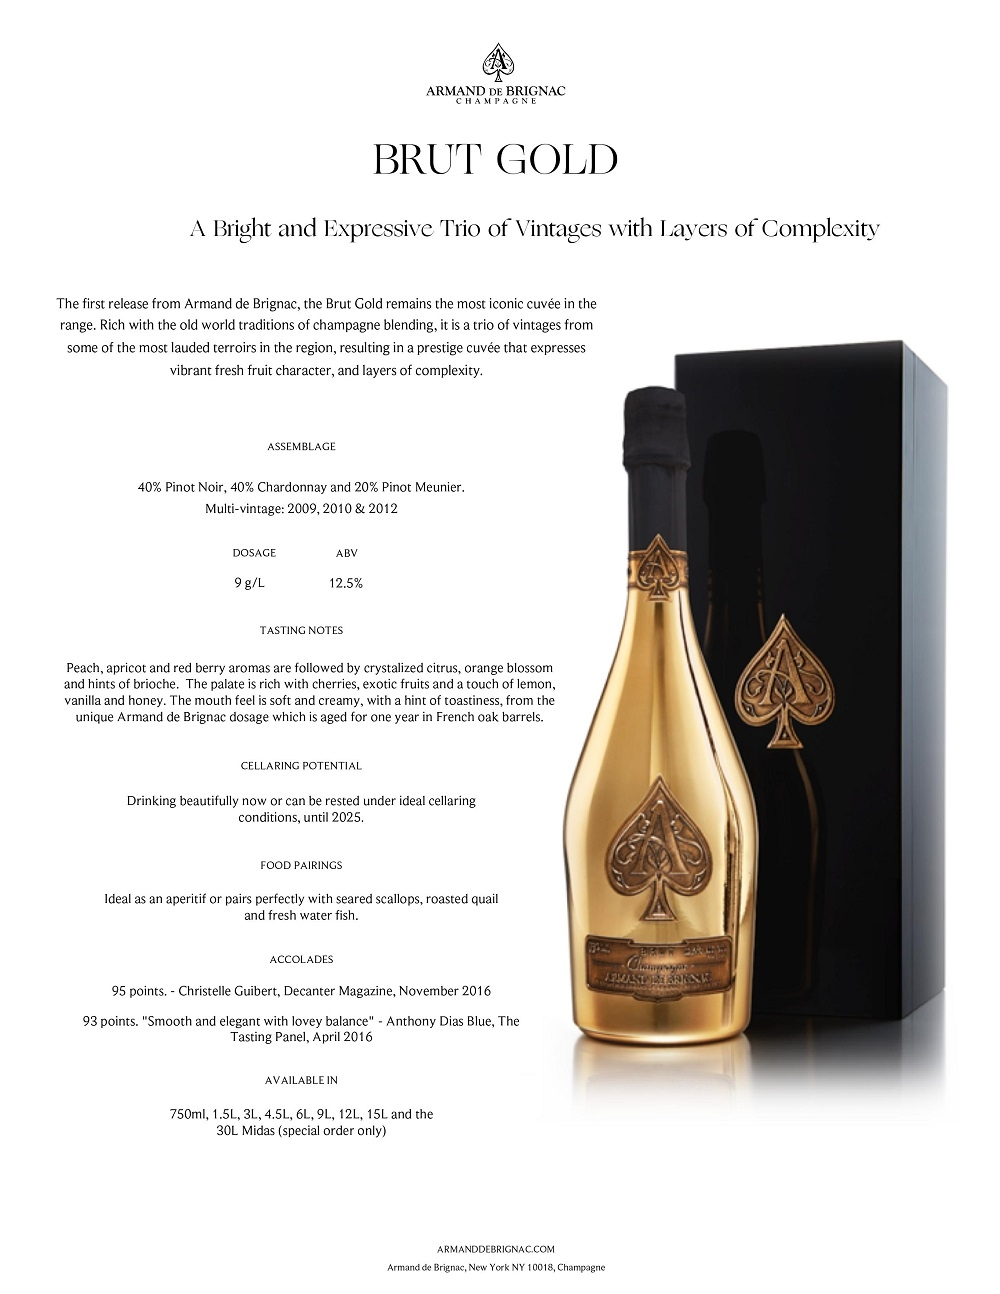 A Bright and Expressive Trio of Vintages with Layers of Complexity The first release from Armand de Brignac, the Brut Gold remains the most iconic cuvée in the range. Rich with the old world traditions of champagne blending, it is a trio of vintages from some of the most lauded terroirs in the region, resulting in a prestige cuvée that expresses vibrant fresh fruit character, and layers of complexity. ASSEMBLAGE 40% Pinot Noir, 40% Chardonnay and 20% Pinot Meunier. Multi-vintage: 2009, 2010 & 2012 Peach, apricot and red berry aromas are followed by crystalized citrus, orange blossom and hints of brioche. The palate is rich with cherries, exotic fruits and a touch of lemon, vanilla and honey. The mouth feel is soft and creamy, with a hint of toastiness, from the unique Armand de Brignac dosage which is aged for one year in French oak barrels. TASTING NOTES Ideal as an aperitif or pairs perfectly with seared scallops, roasted quail and fresh water fish. FOOD PAIRINGS Drinking beautifully now or can be rested under ideal cellaring conditions, until 2025. CELLARING POTENTIAL AVAILABLE IN BRUT GOLD 95 points. - Christelle Guibert, Decanter Magazine, November 2016 93 points.